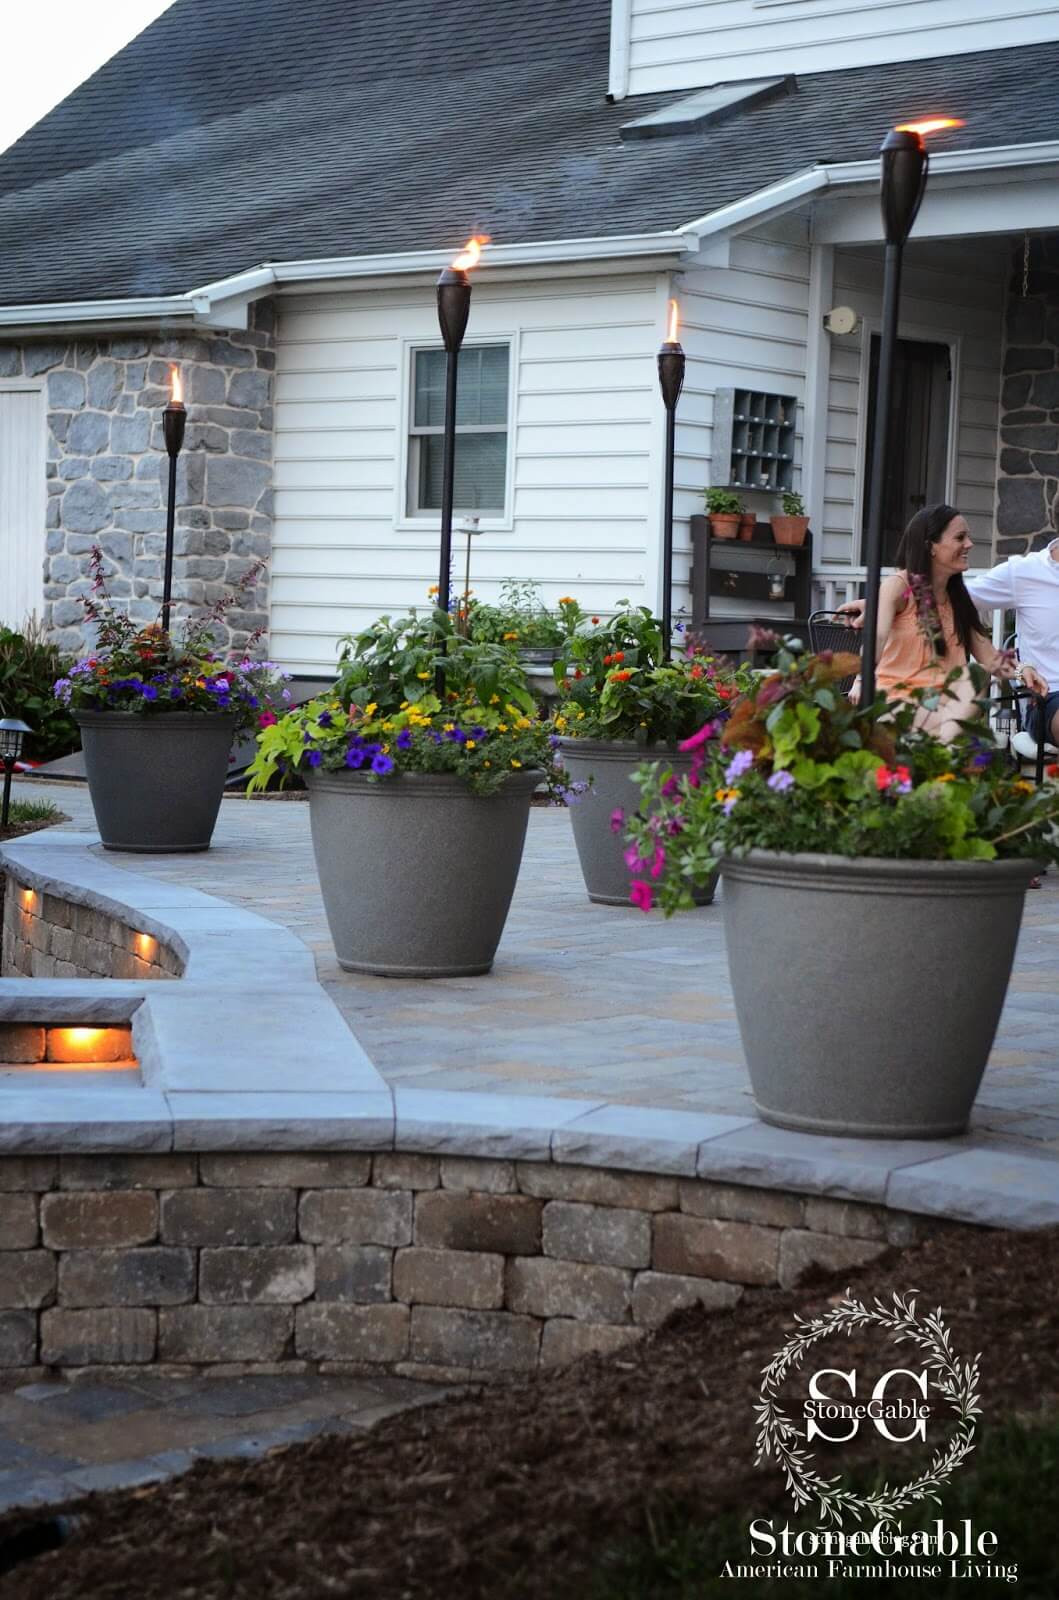 Best ideas about Cheap DIY Backyard Ideas . Save or Pin Backyard Projects 15 Amazing DIY Outdoor Decor Ideas Now.